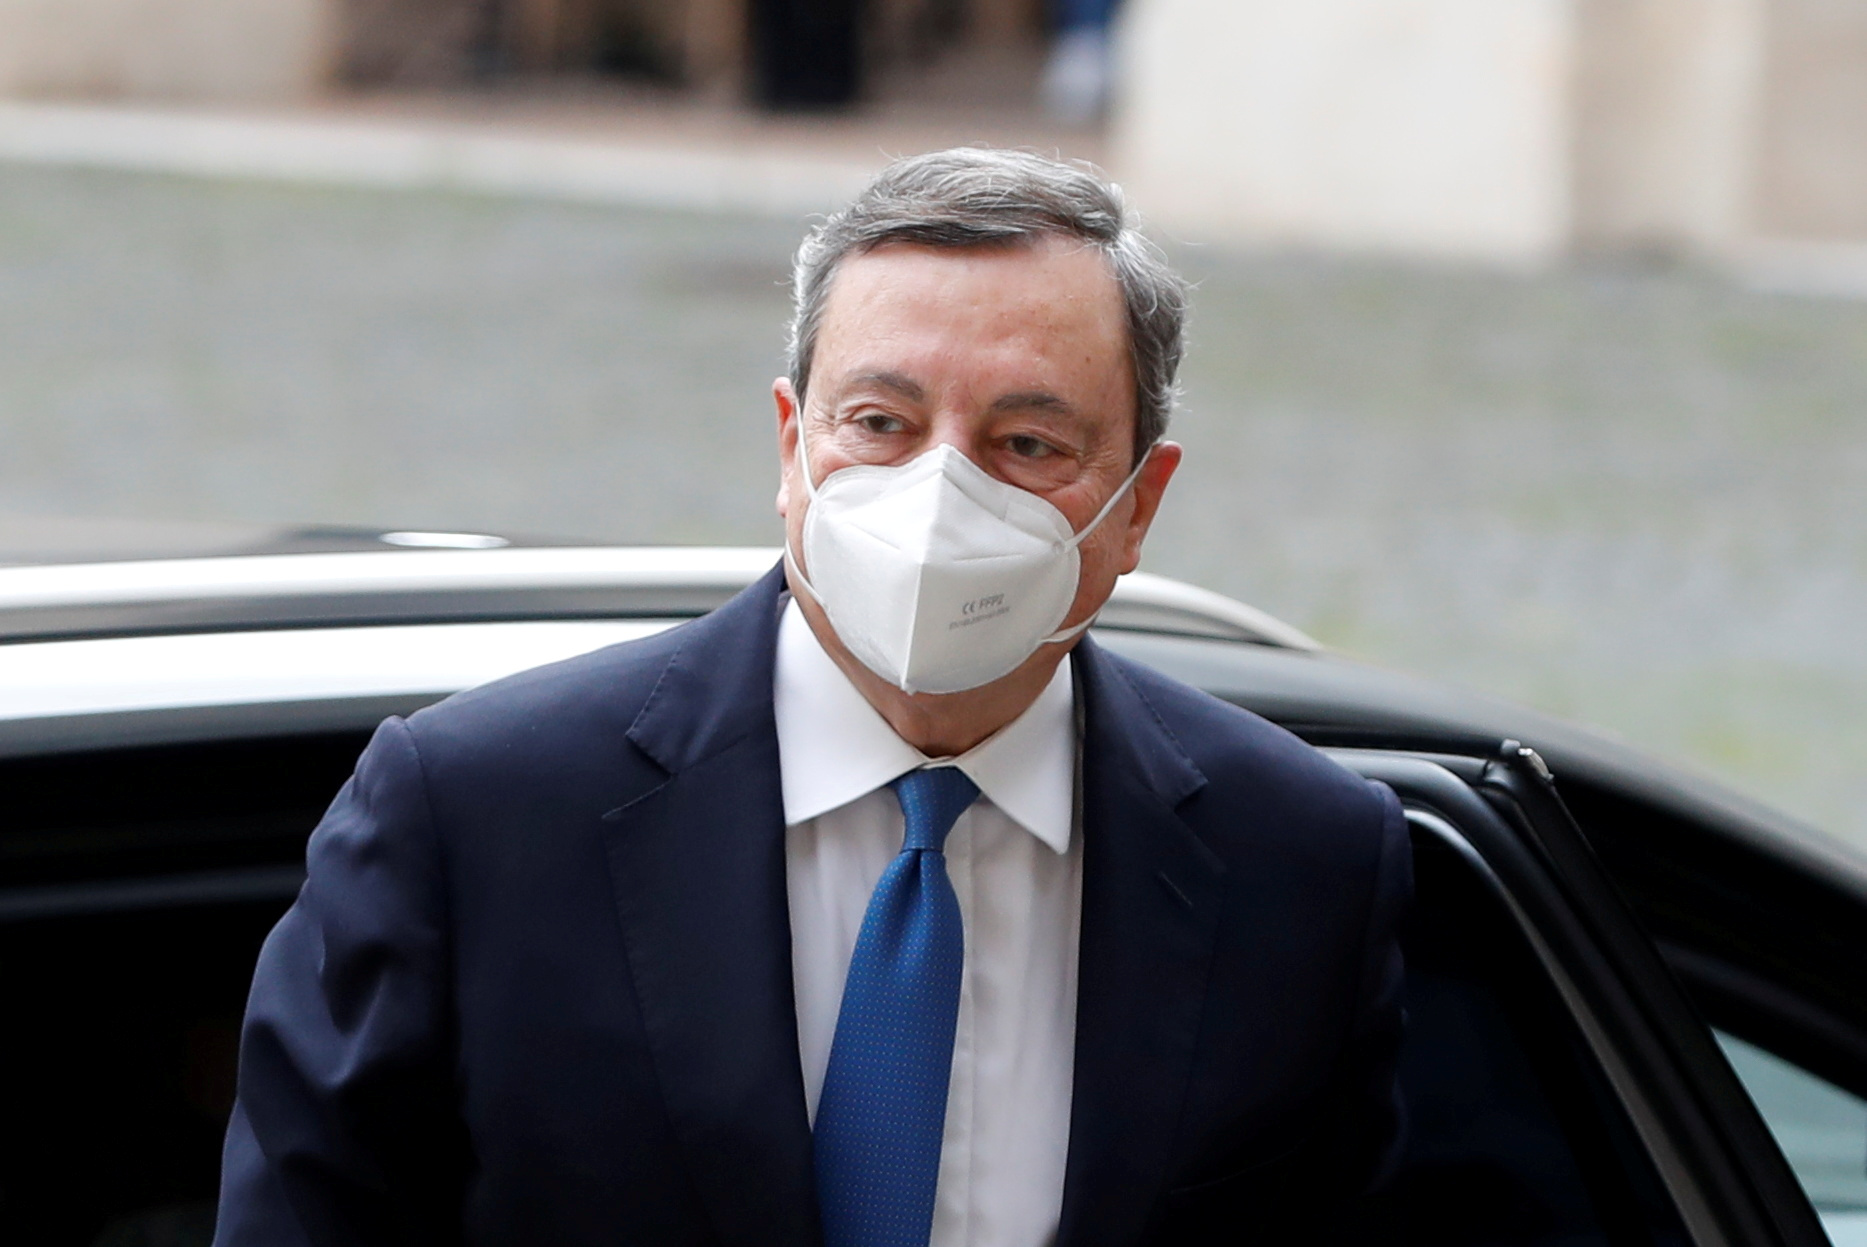 Former European Central Bank President Mario Draghi arrives for a meeting with Italian President Sergio Mattarella at the Quirinale Palace in Rome, Italy February 3, 2021. REUTERS/Yara Nardi/File Photo